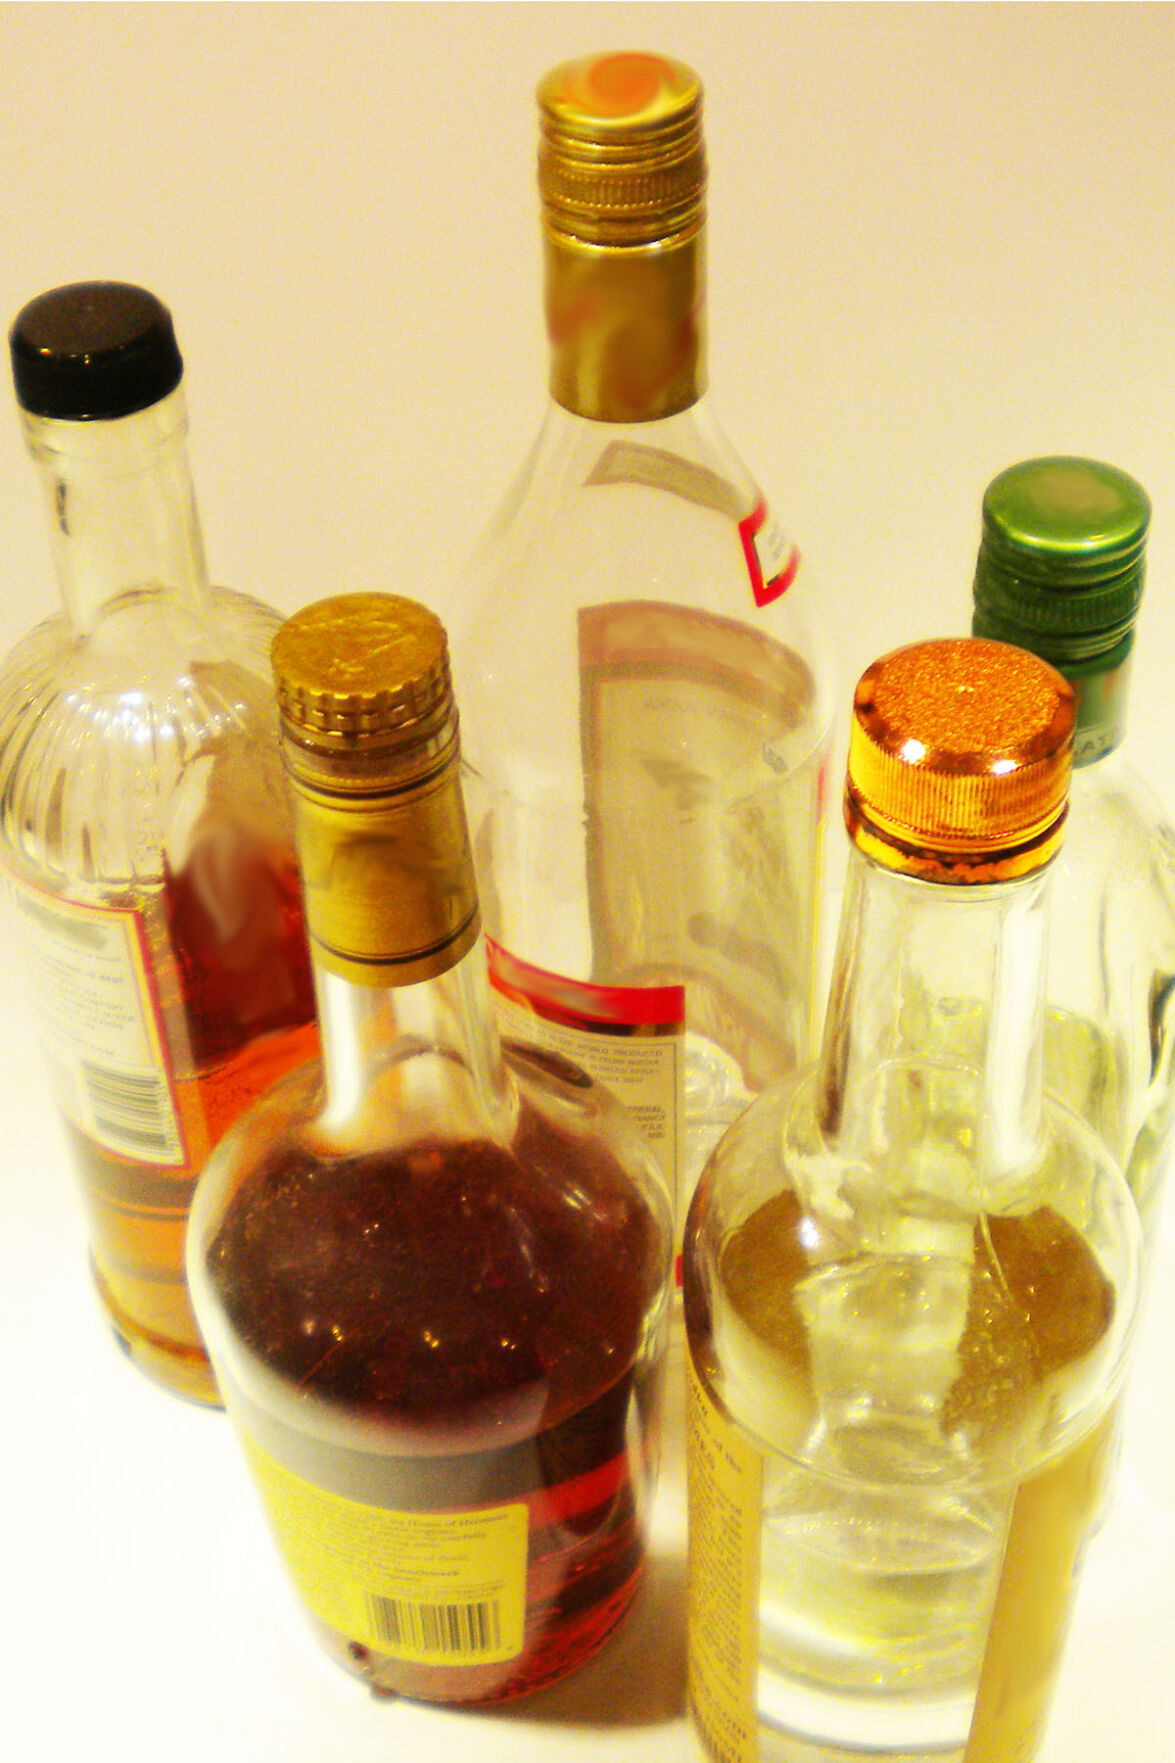 Alcohol abuse may raise risk of death in patients with abnormal heart rhythms